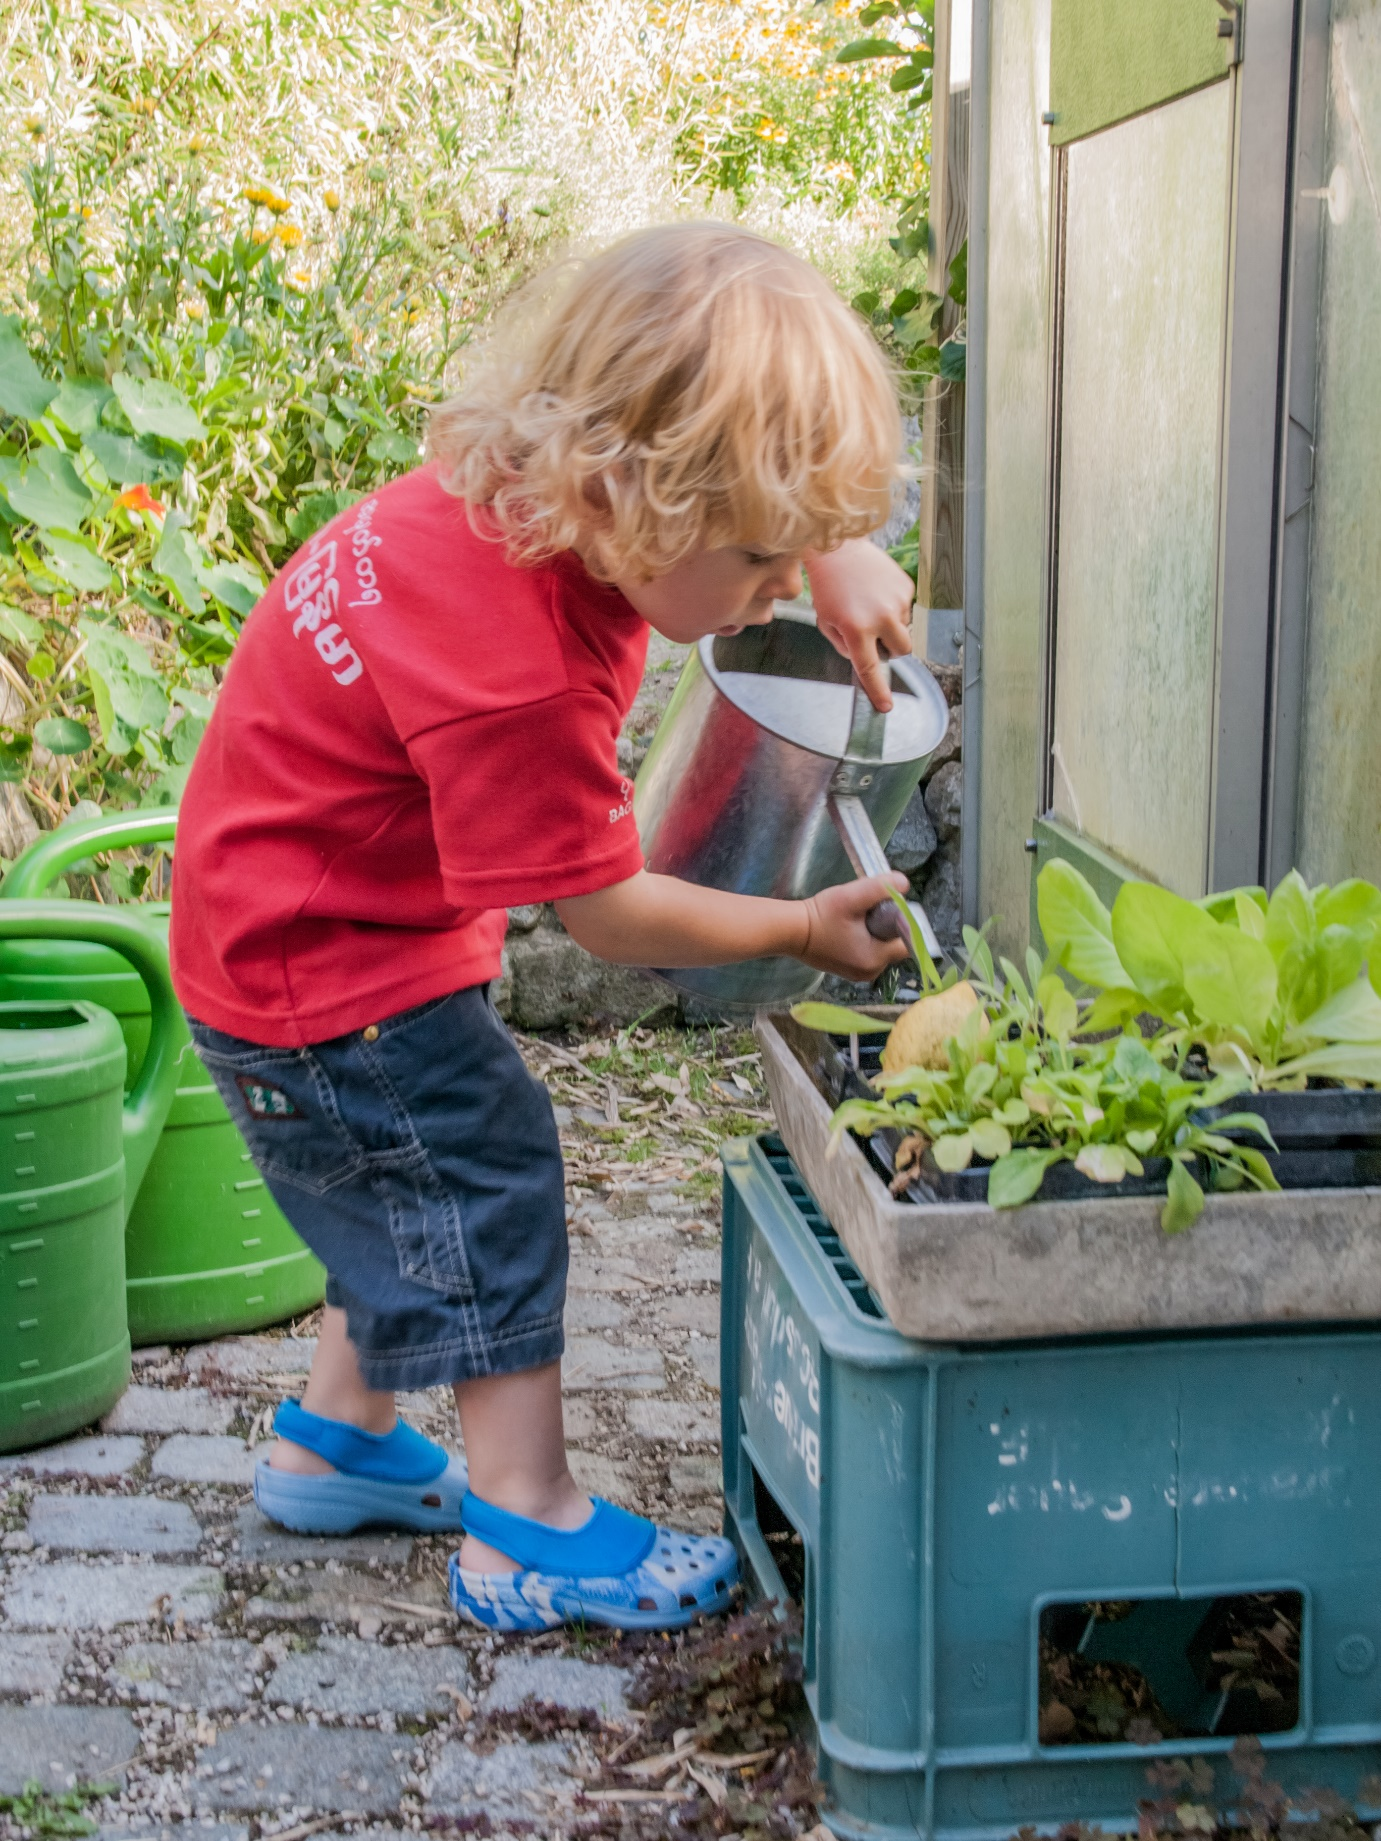 Ways to Encourage Your Child to be More Green